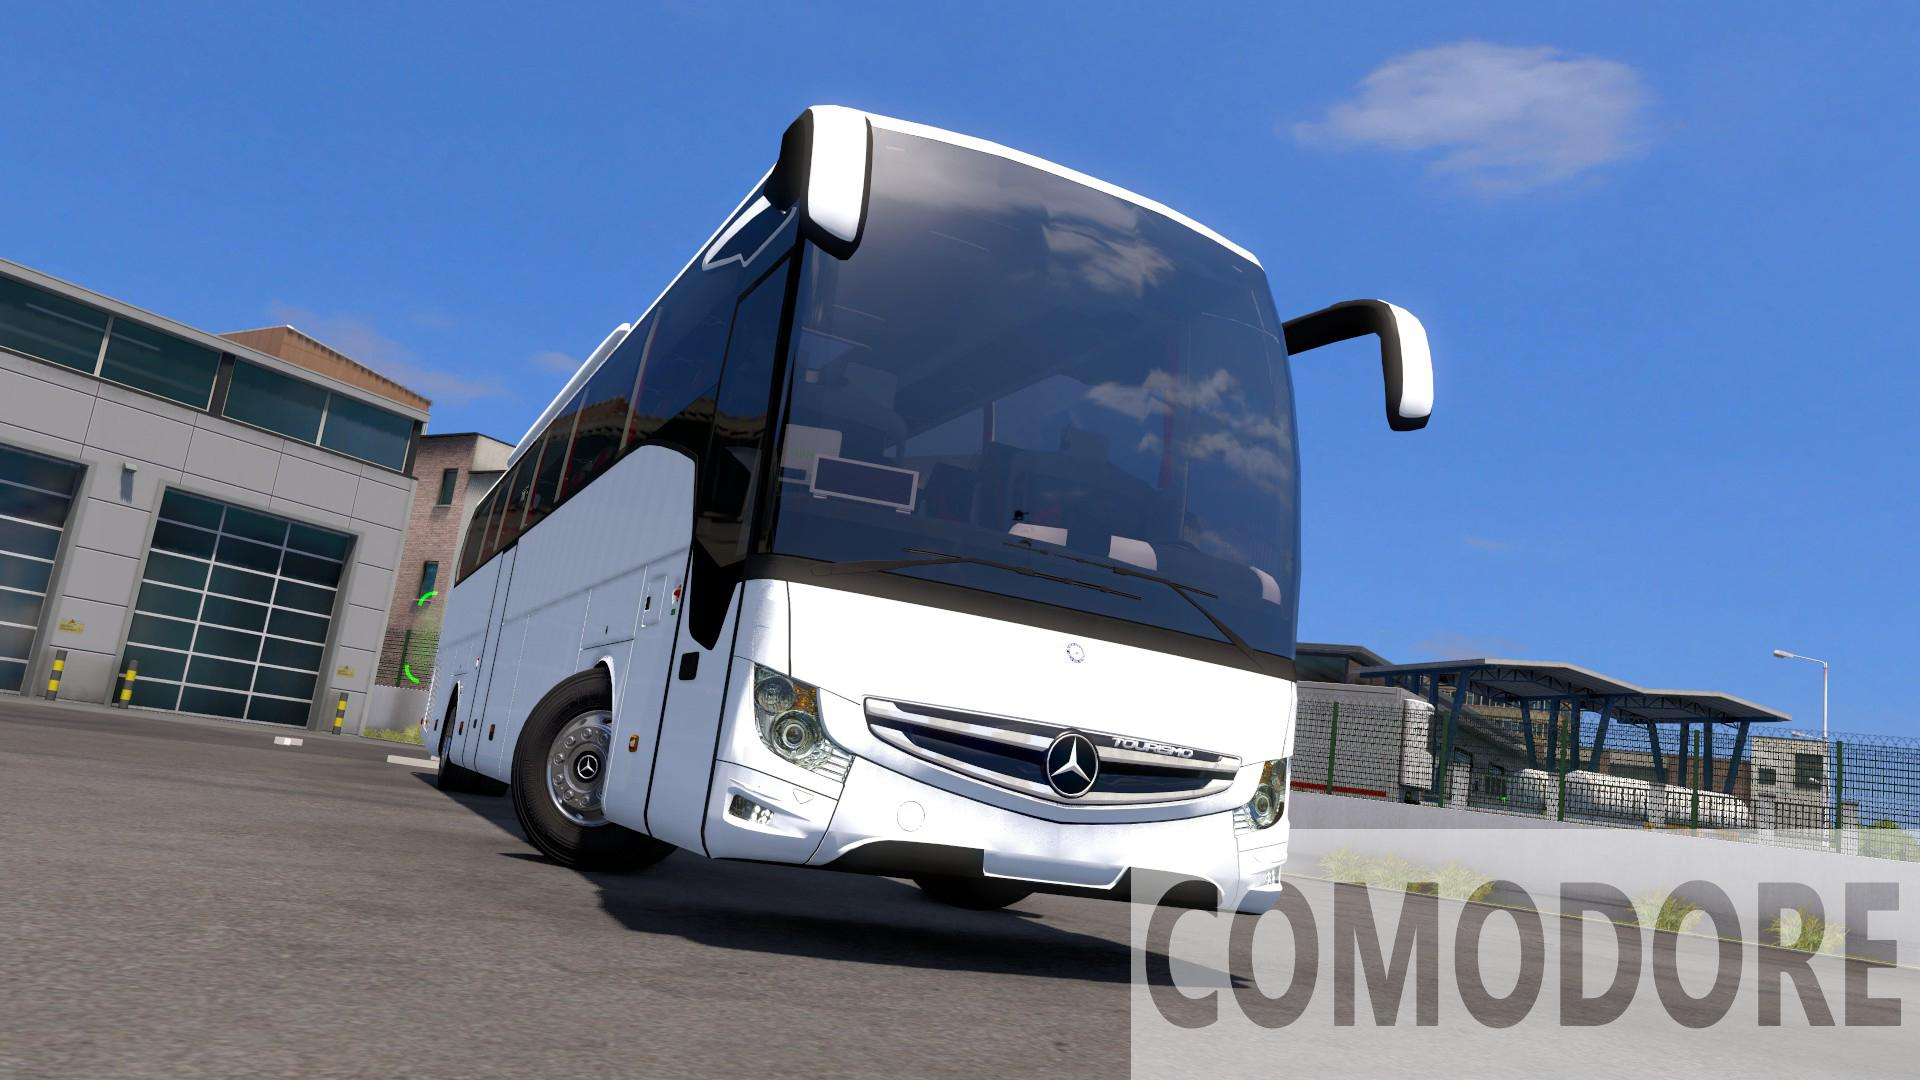 ETS2 - Mercedes-Benz New Tourismo Edition 1 15-16-17 RHD Bus V3.5 (1.38.x)